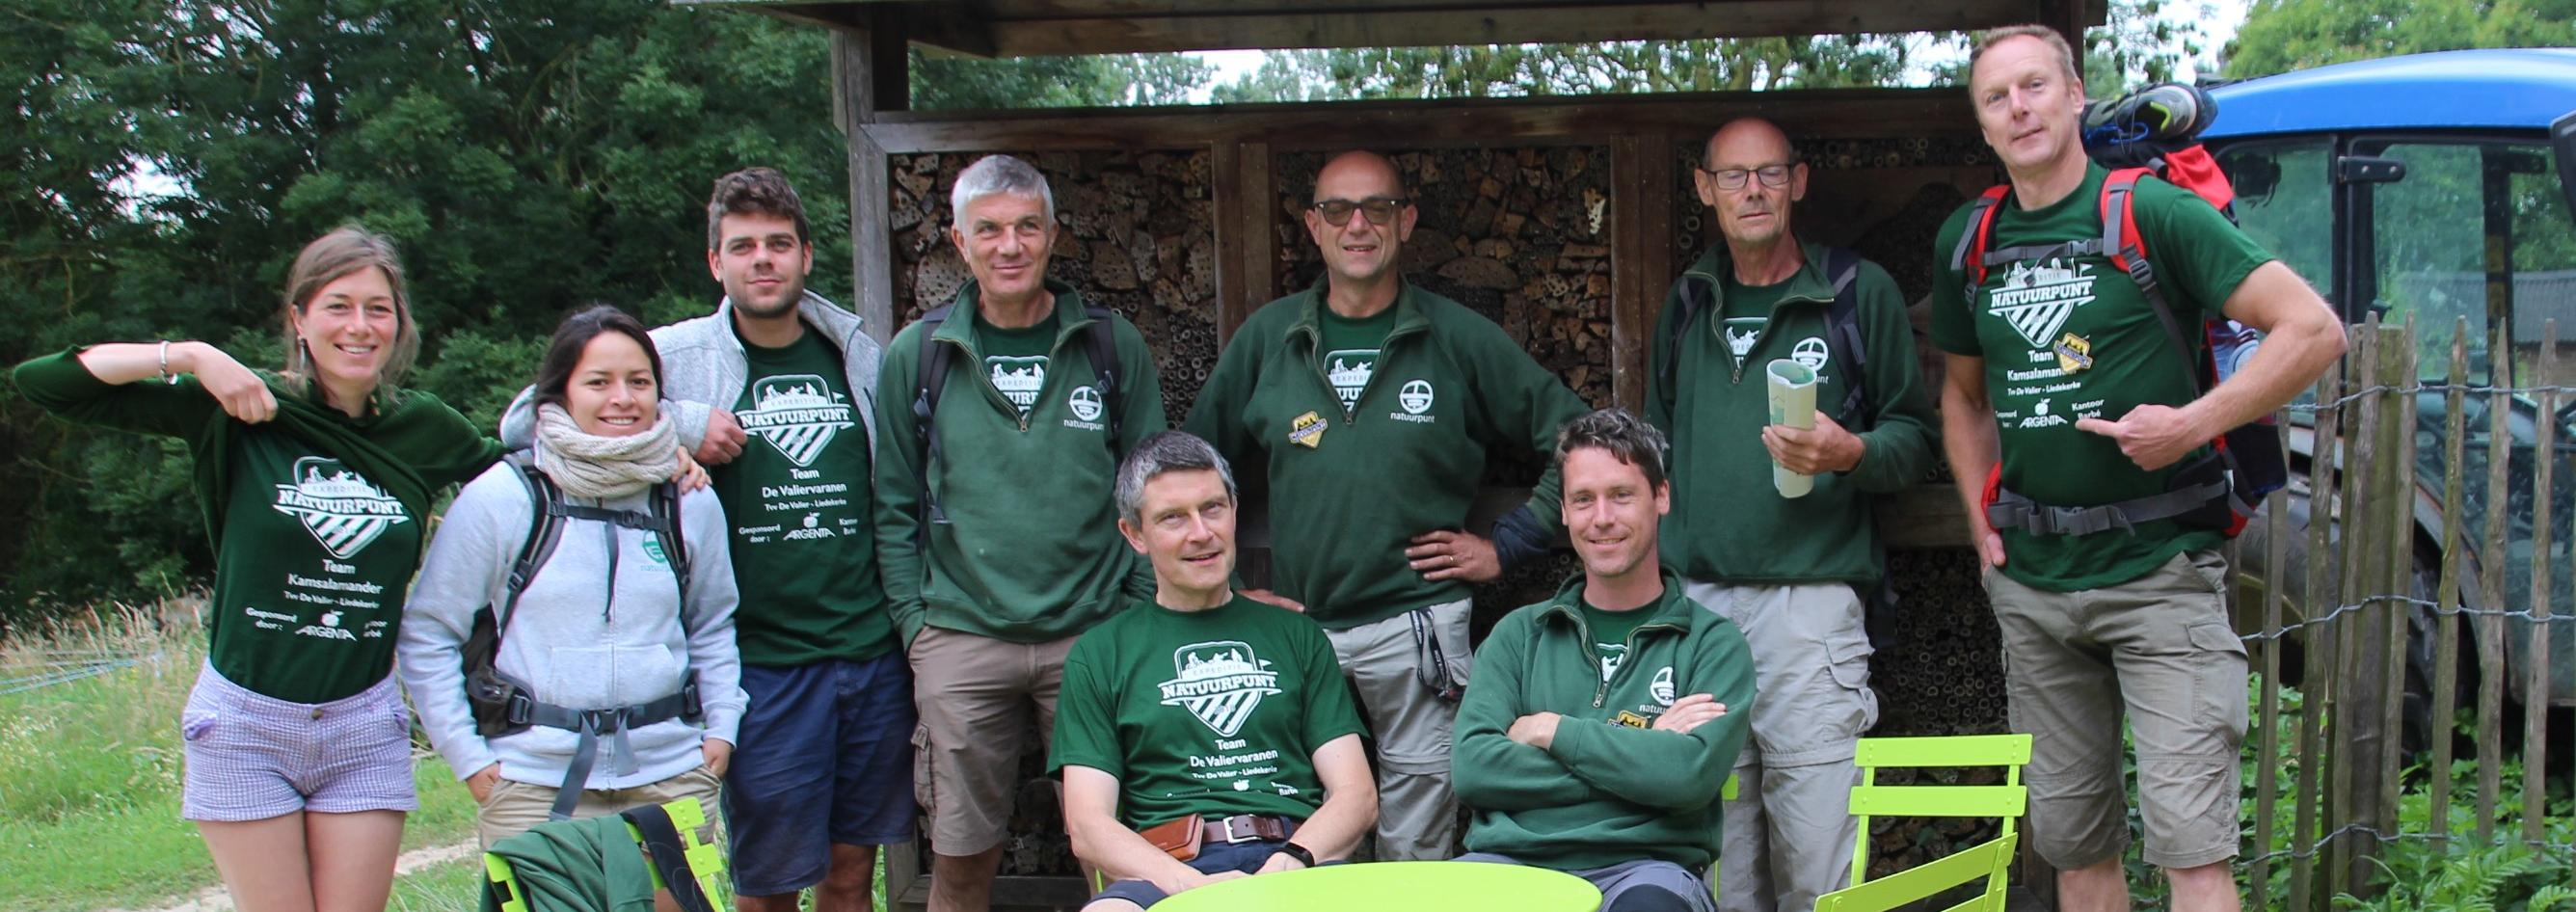 Teams expeditie Natuurpunt 2018